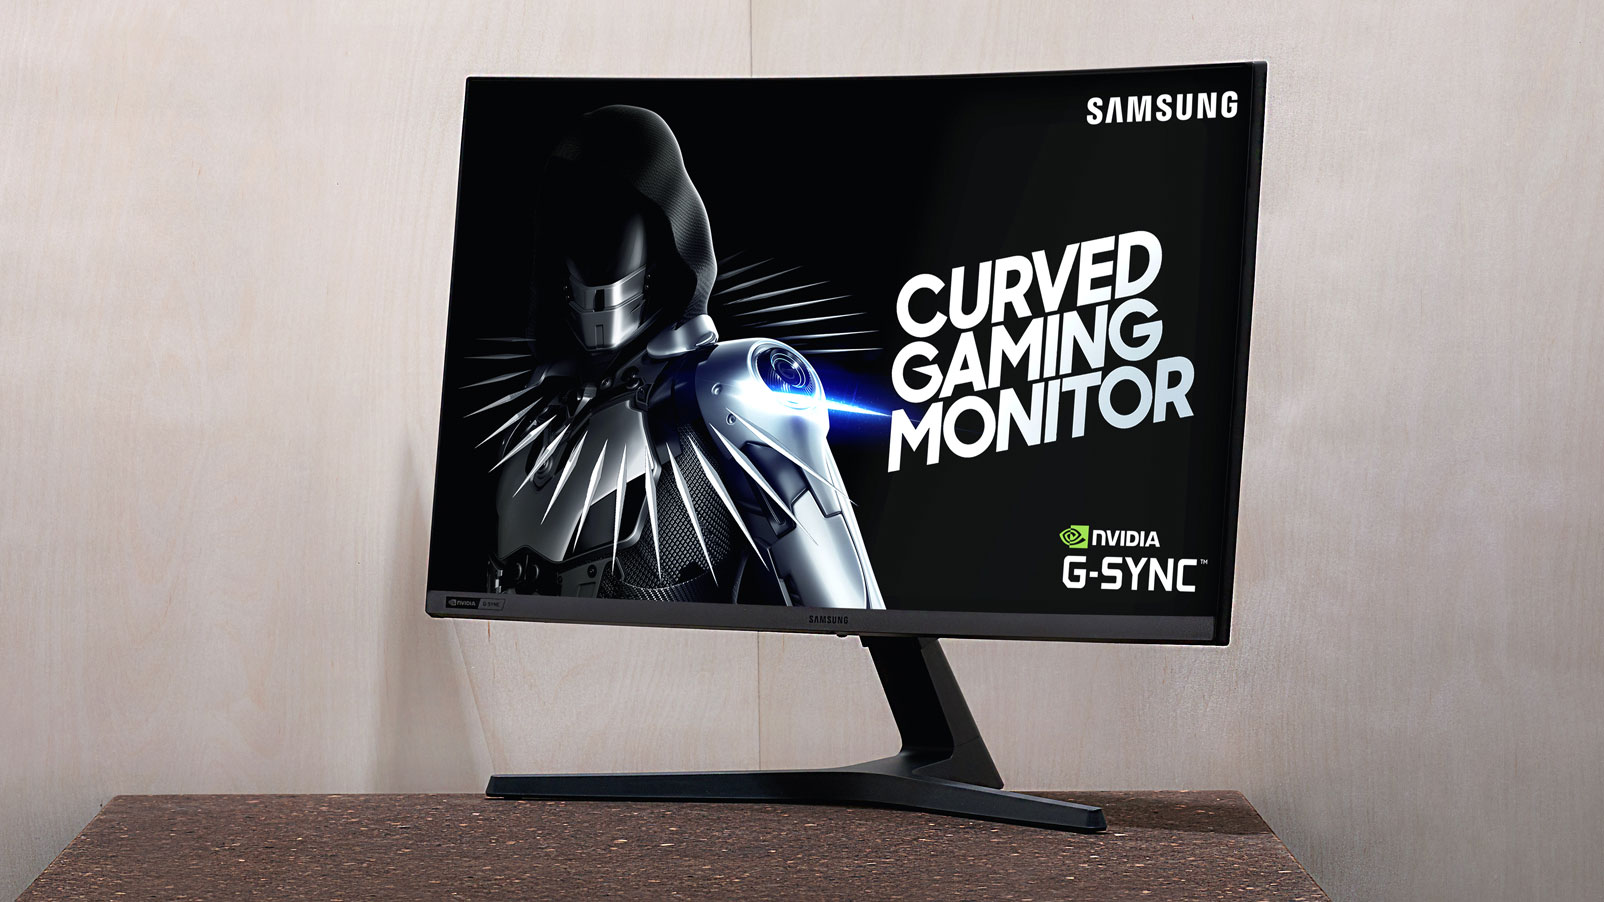 Samsung Curved Gaming Monitor CRG527 4 1